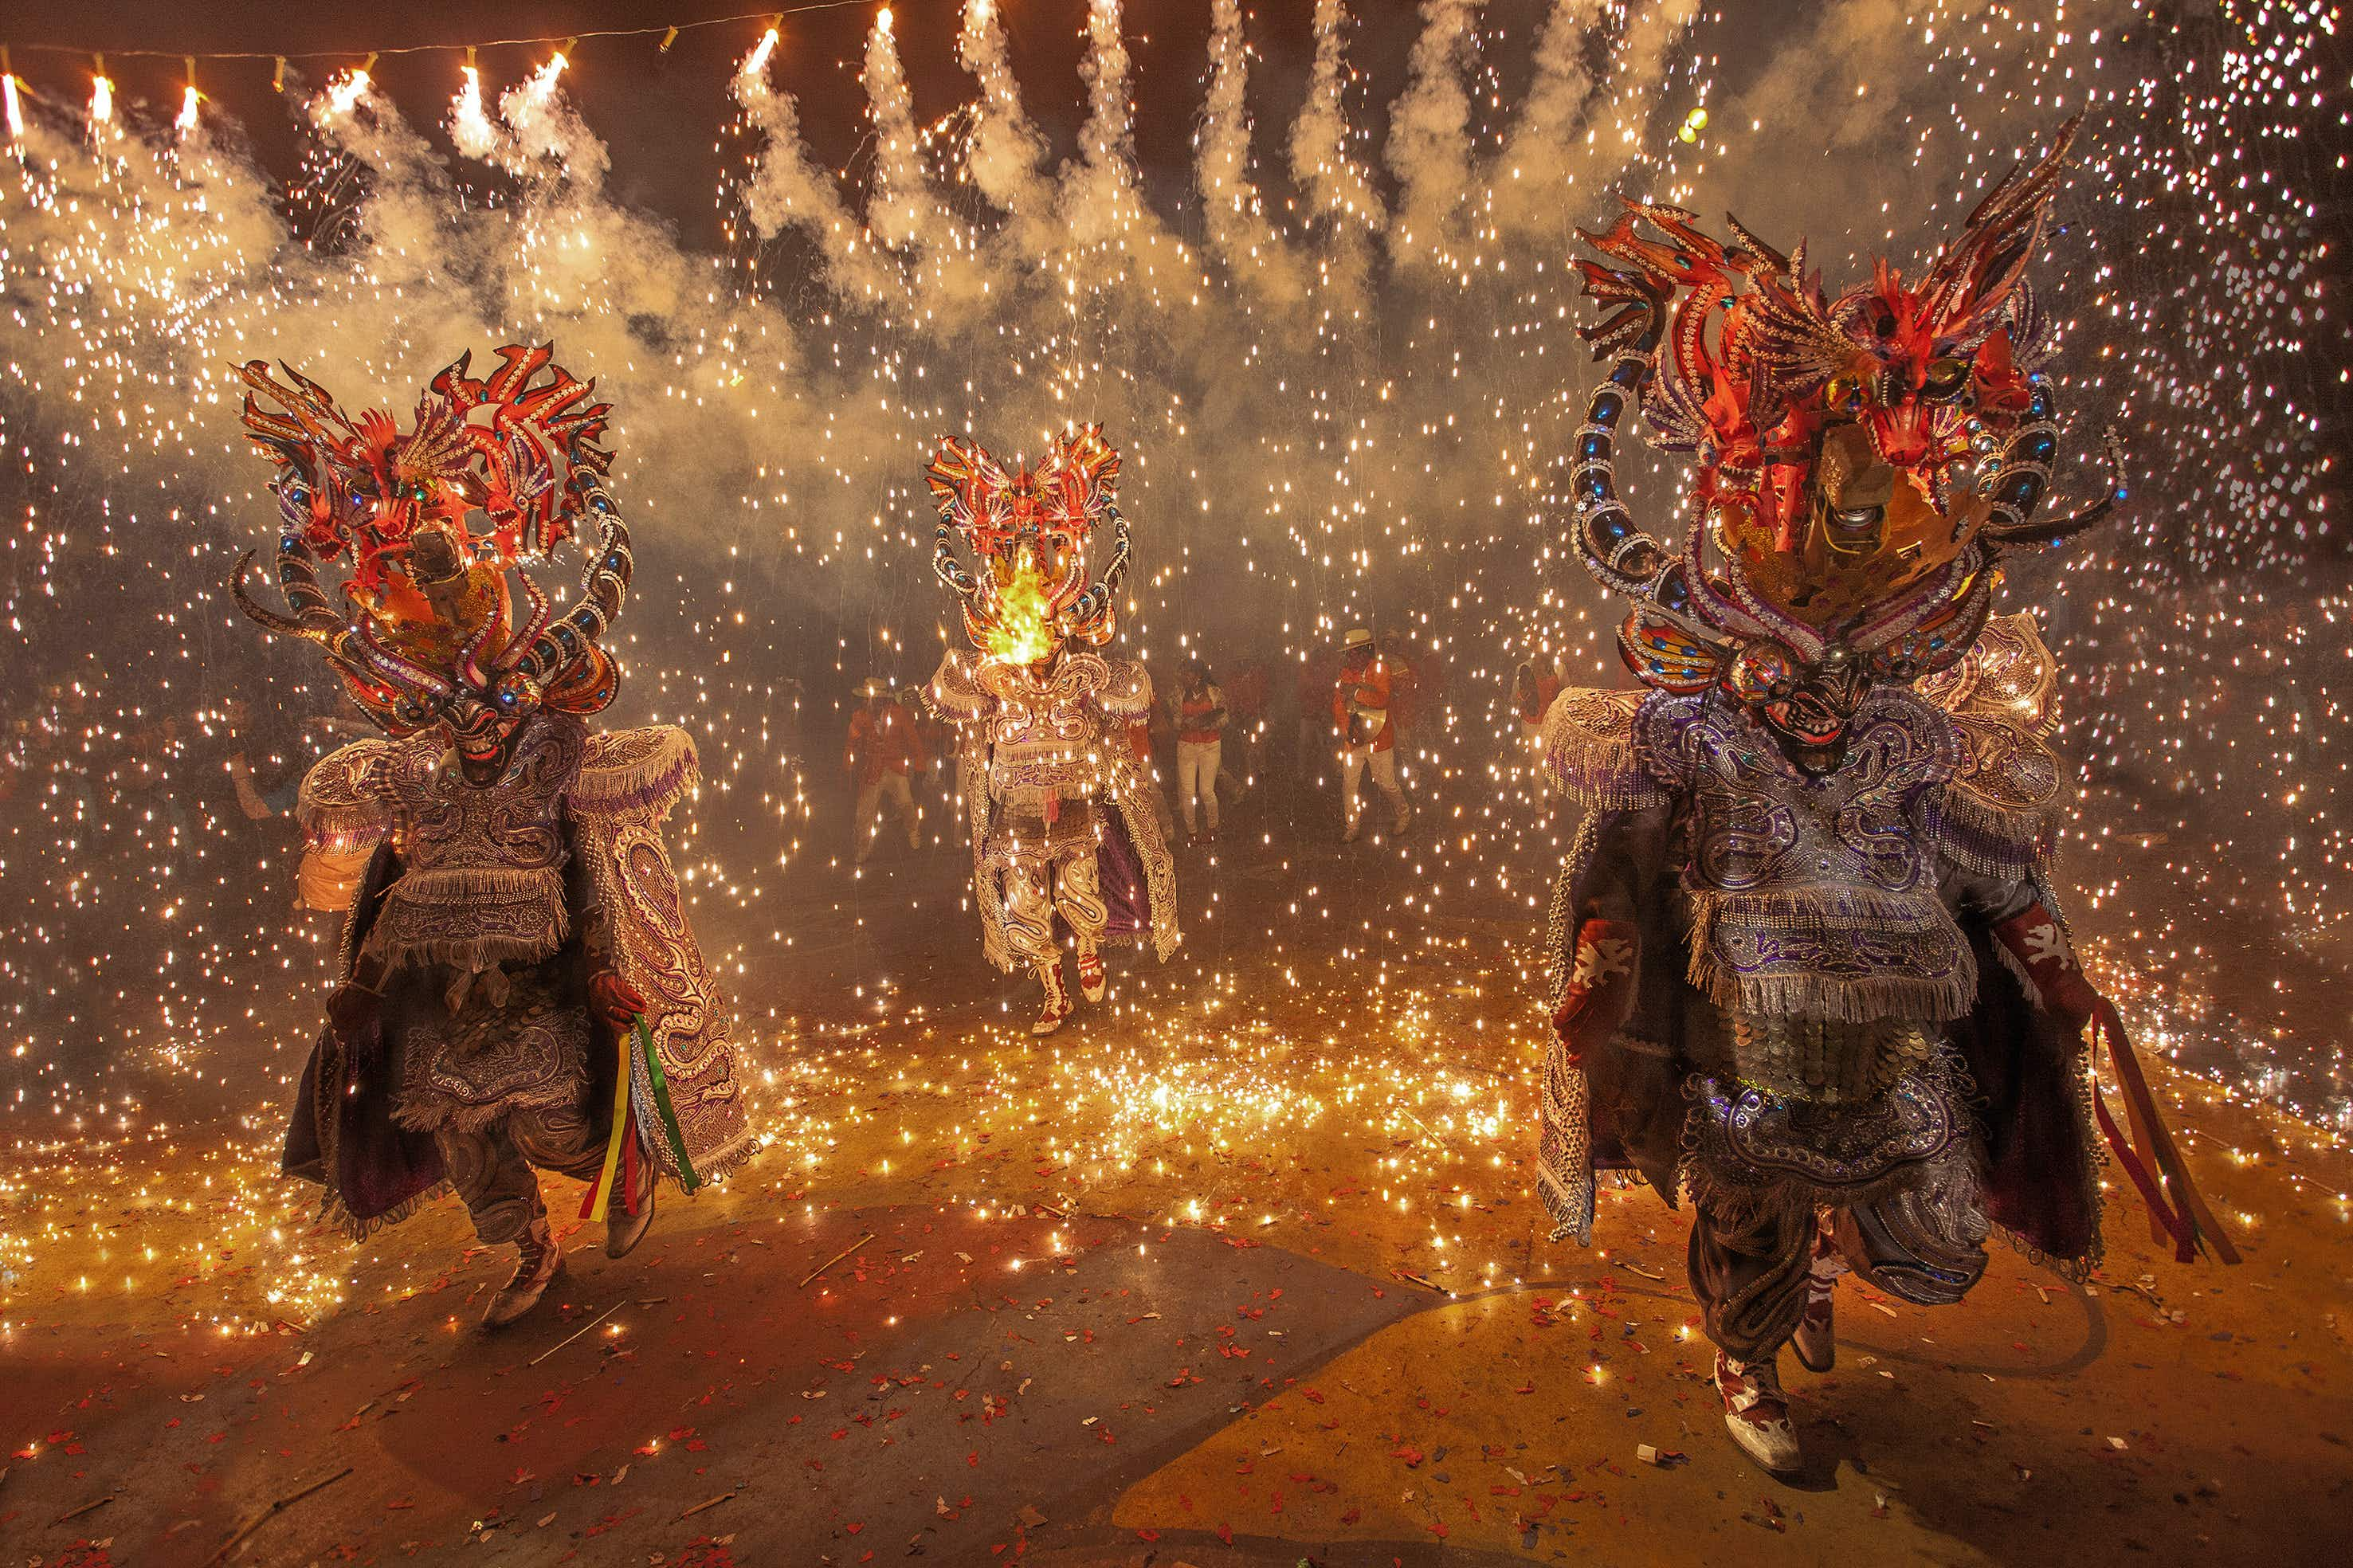 Carnival isn't just sparkles and feathers – learn more about Latin America's most unique carnival traditions © Marcelo Chacón Aracena / Getty Images